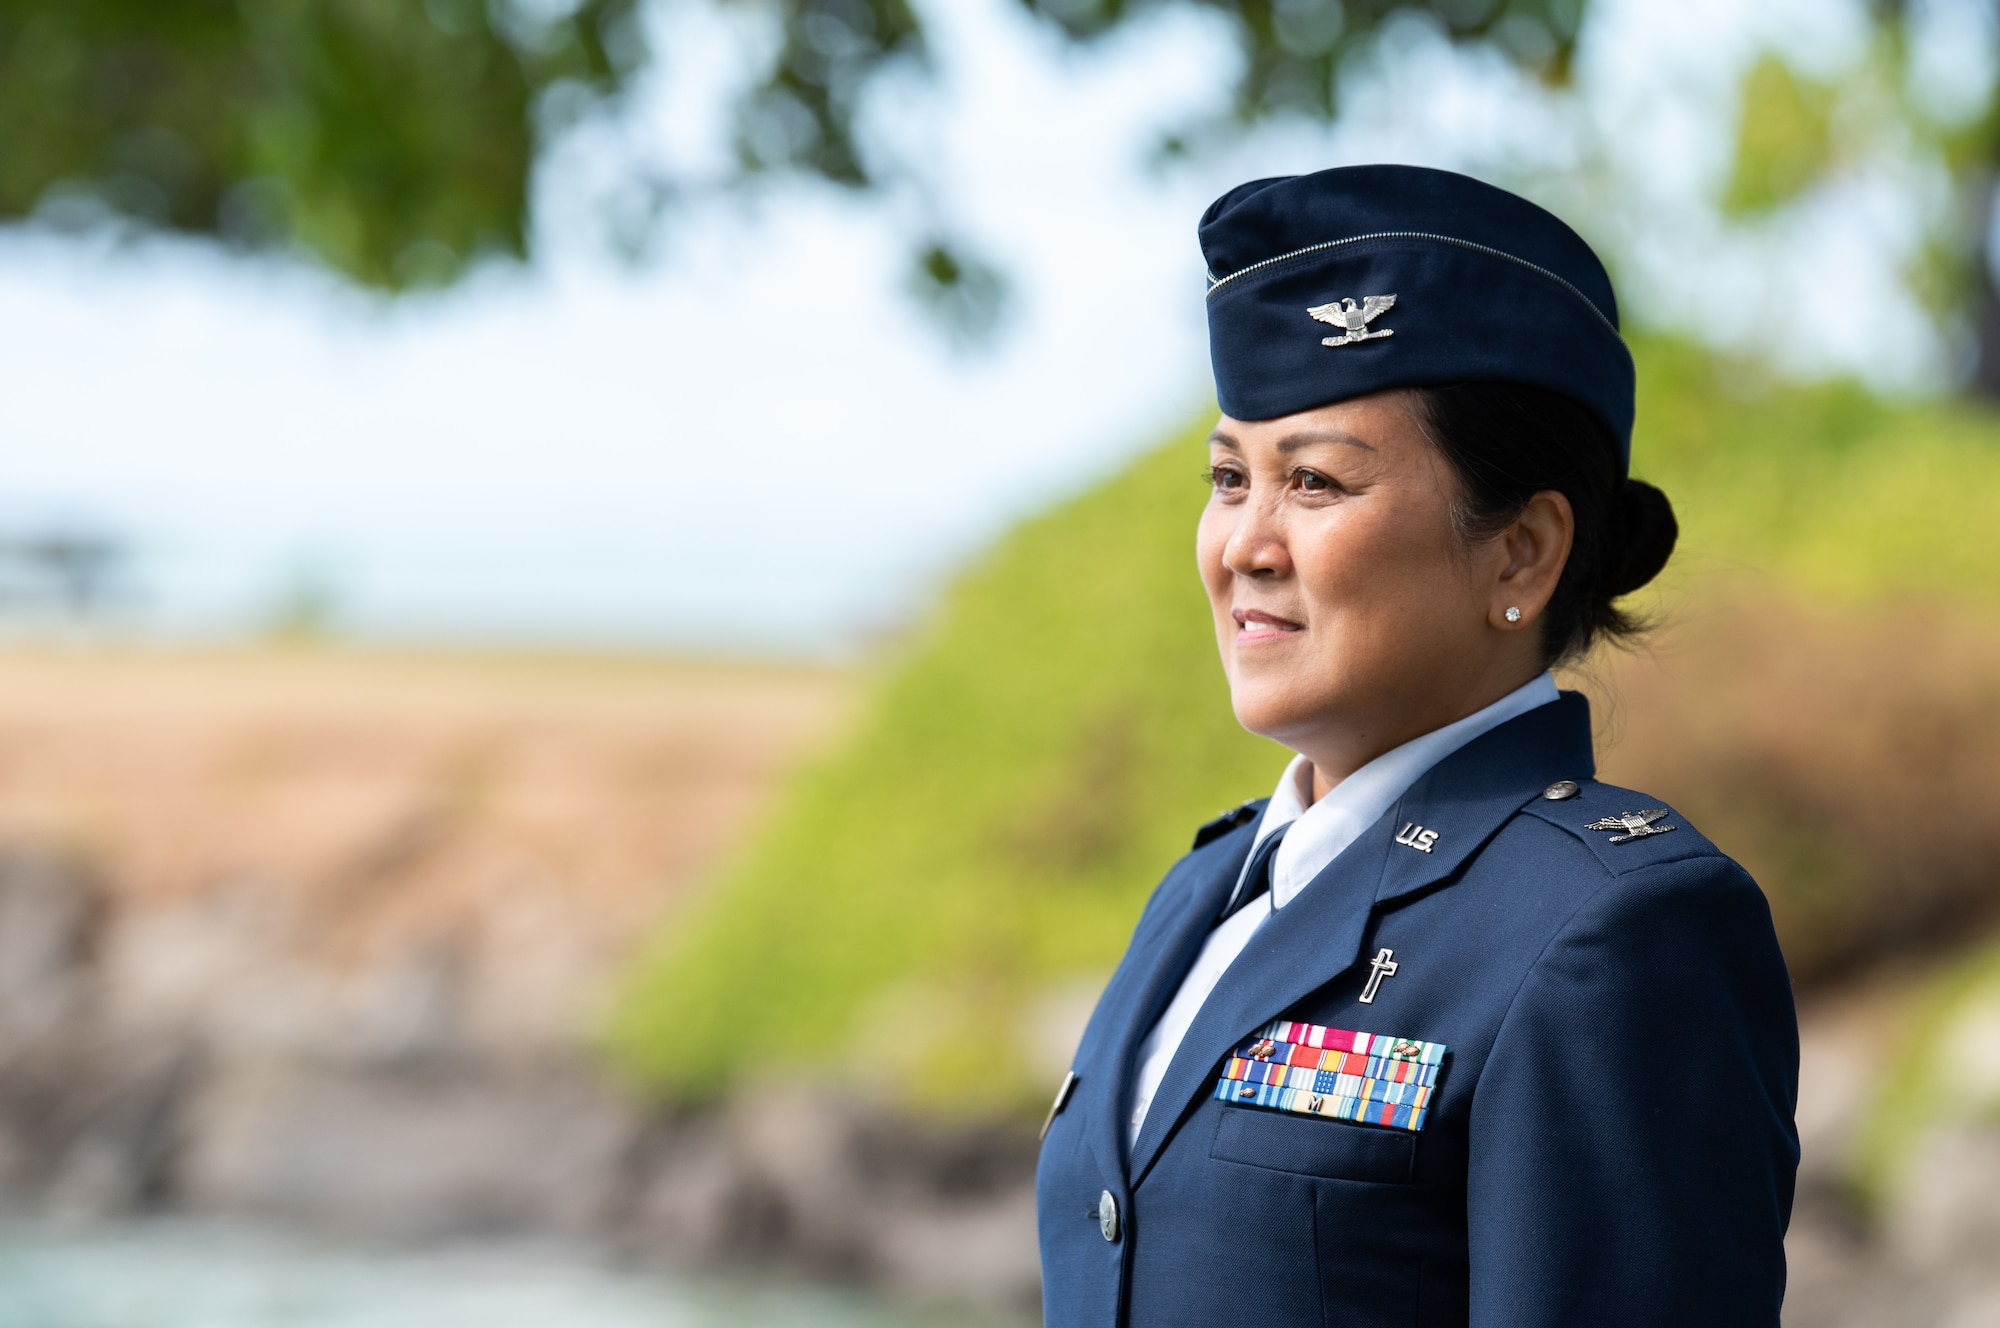 Col. Leah Boling, 154th Wing chaplain, delivers a virtual prayer invocation June 2, 2021, at Joint Base Pearl Harbor-Hickam-Hawaii. Boling became the first Asian American and Pacific Islander female promoted to the rank of colonel within the U.S. Air Force Chaplain Corps. (U.S. Air National Guard photo by Staff Sgt. John Linzmeier)